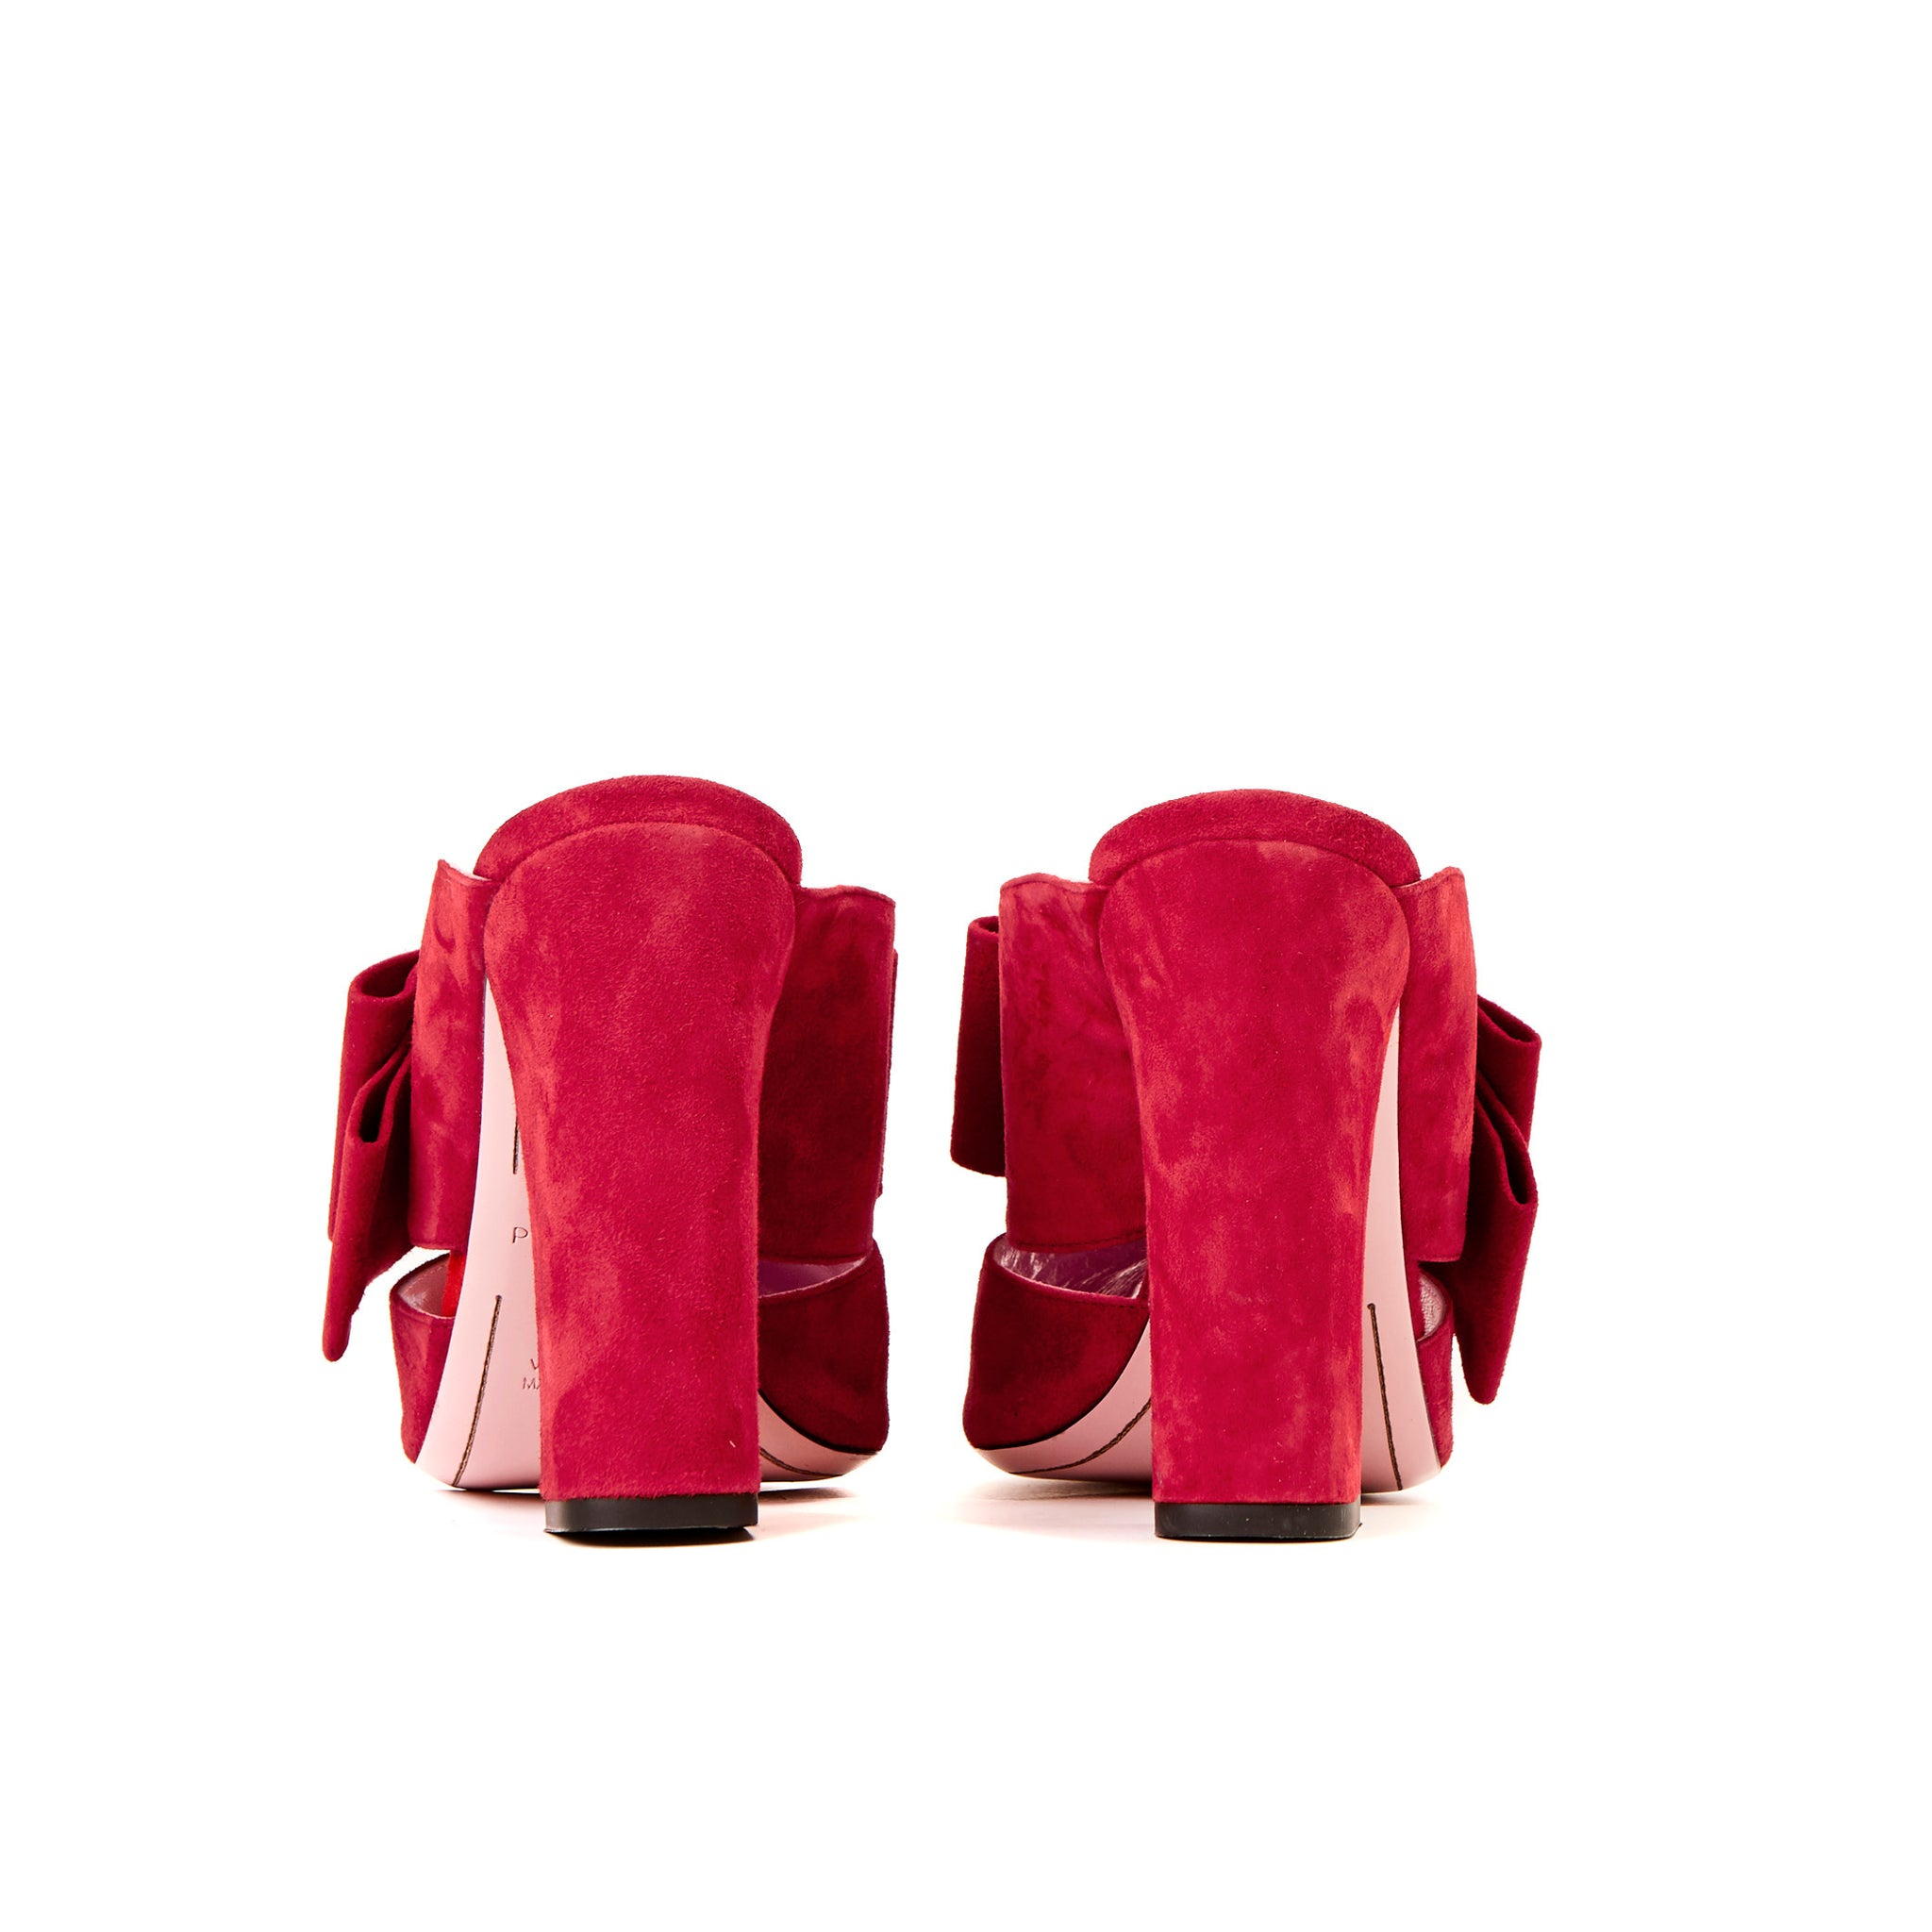 Phare High heel block heel mule with bow in rosso suede sole view